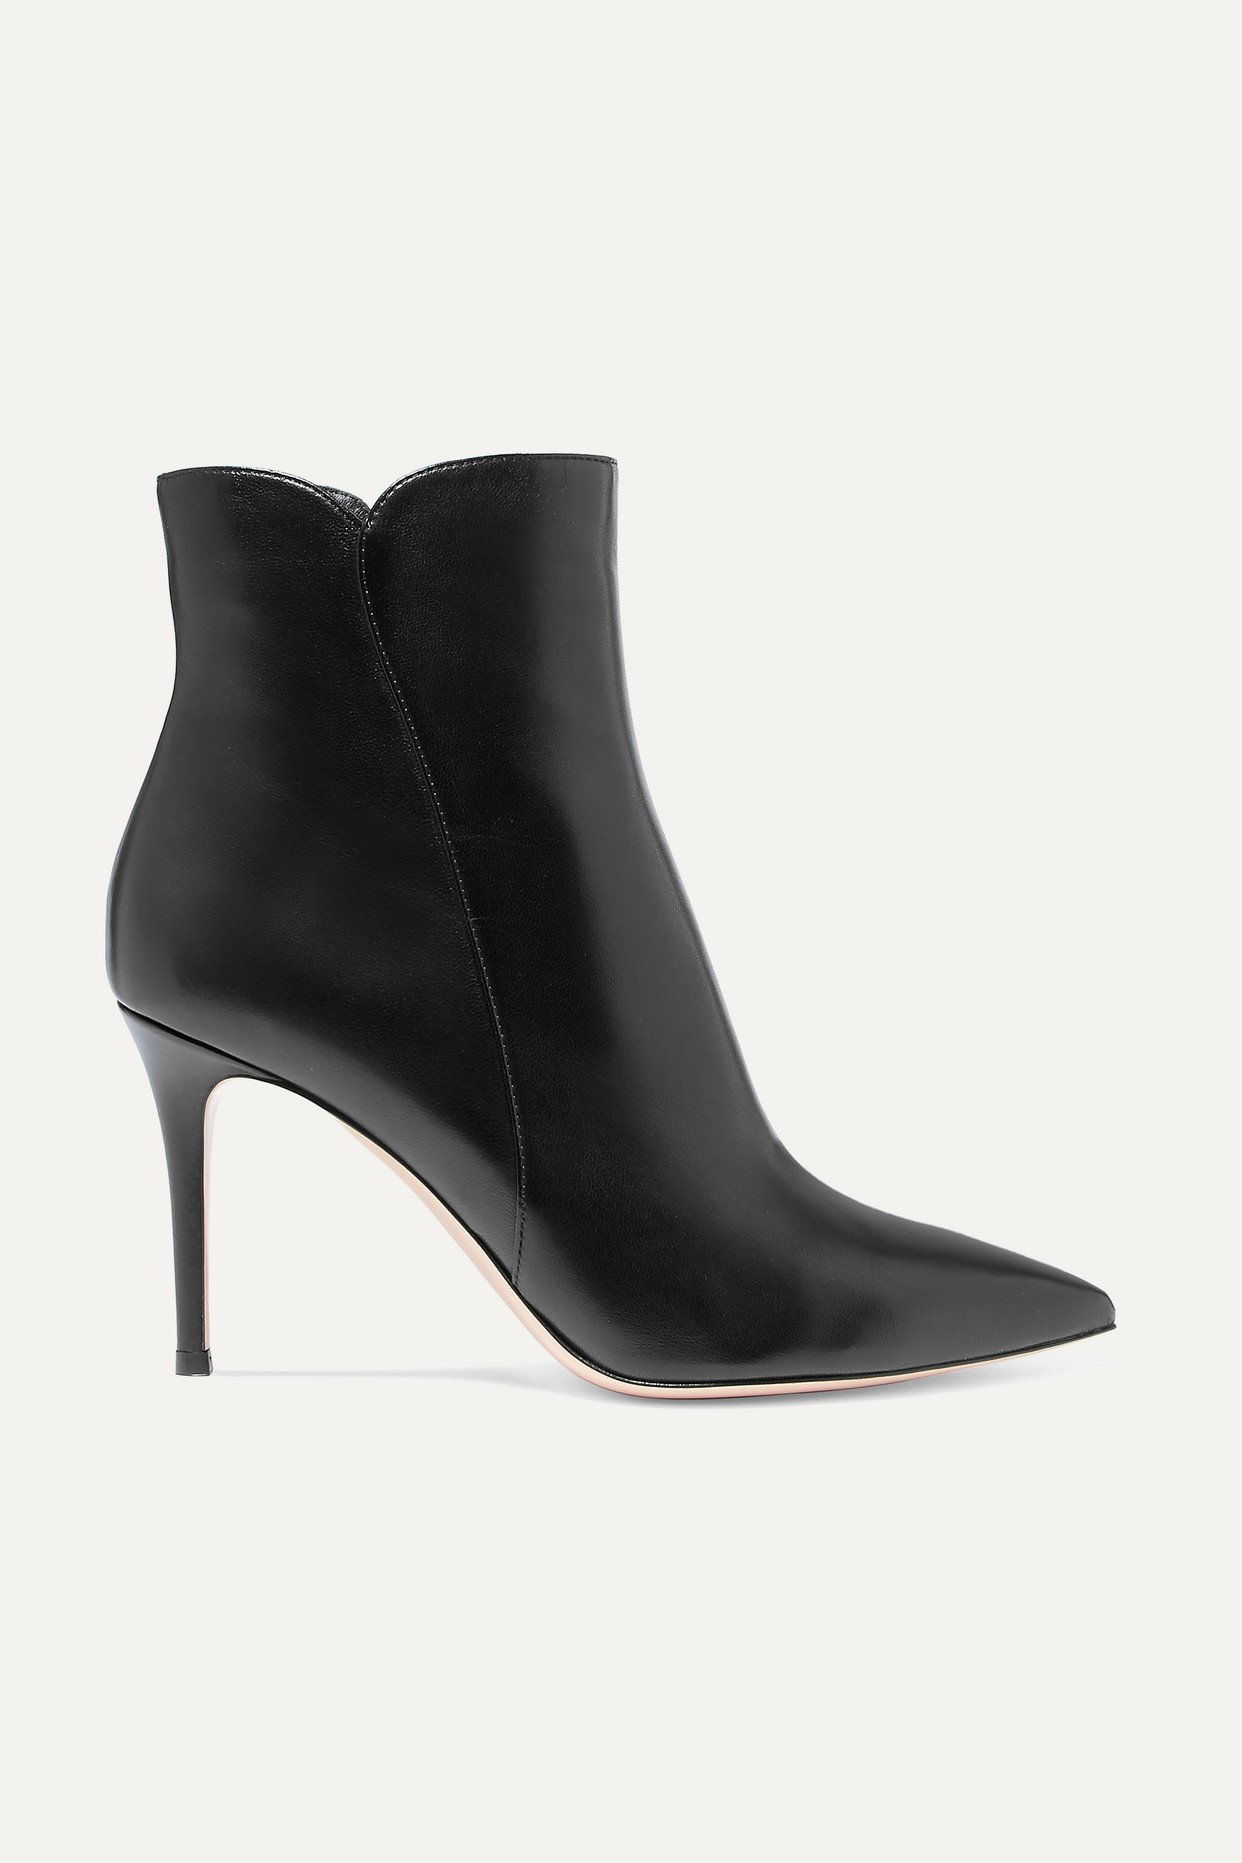 GIANVITO ROSSI - Levy 85 Leather Ankle Boots - Black - IT39